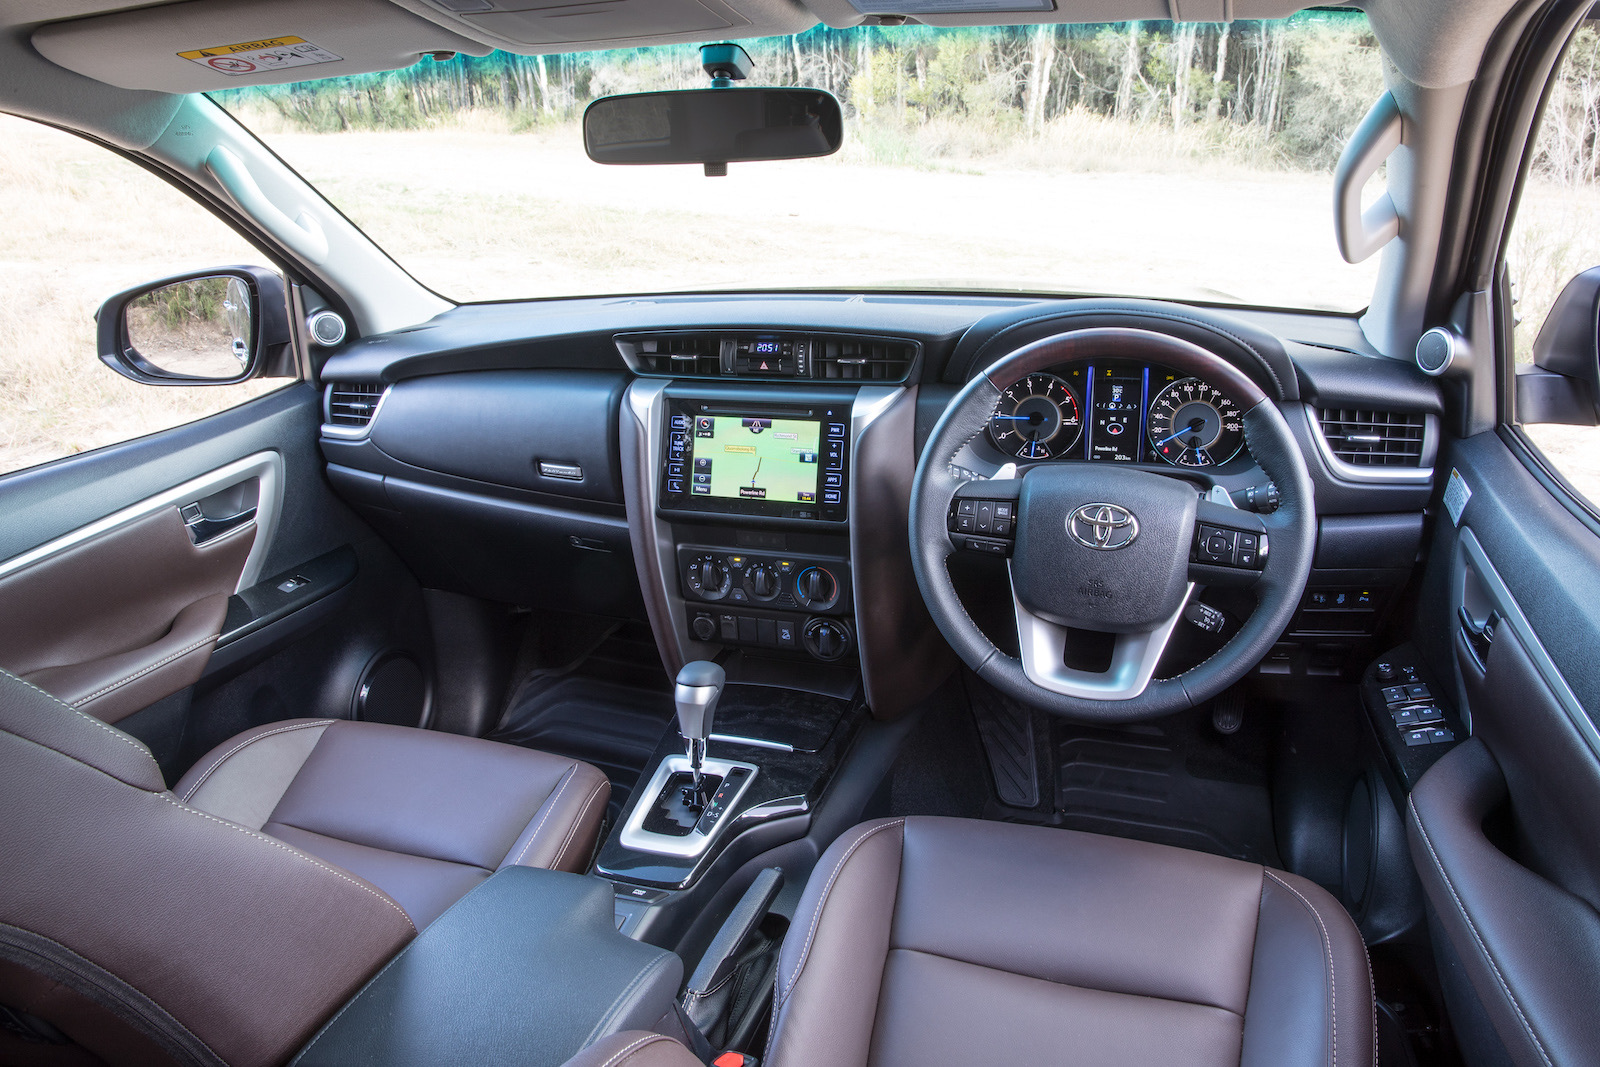 Land Cruiser Price In India >> 2018 Toyota Fortuner now on sale, prices cut by $5000 | PerformanceDrive